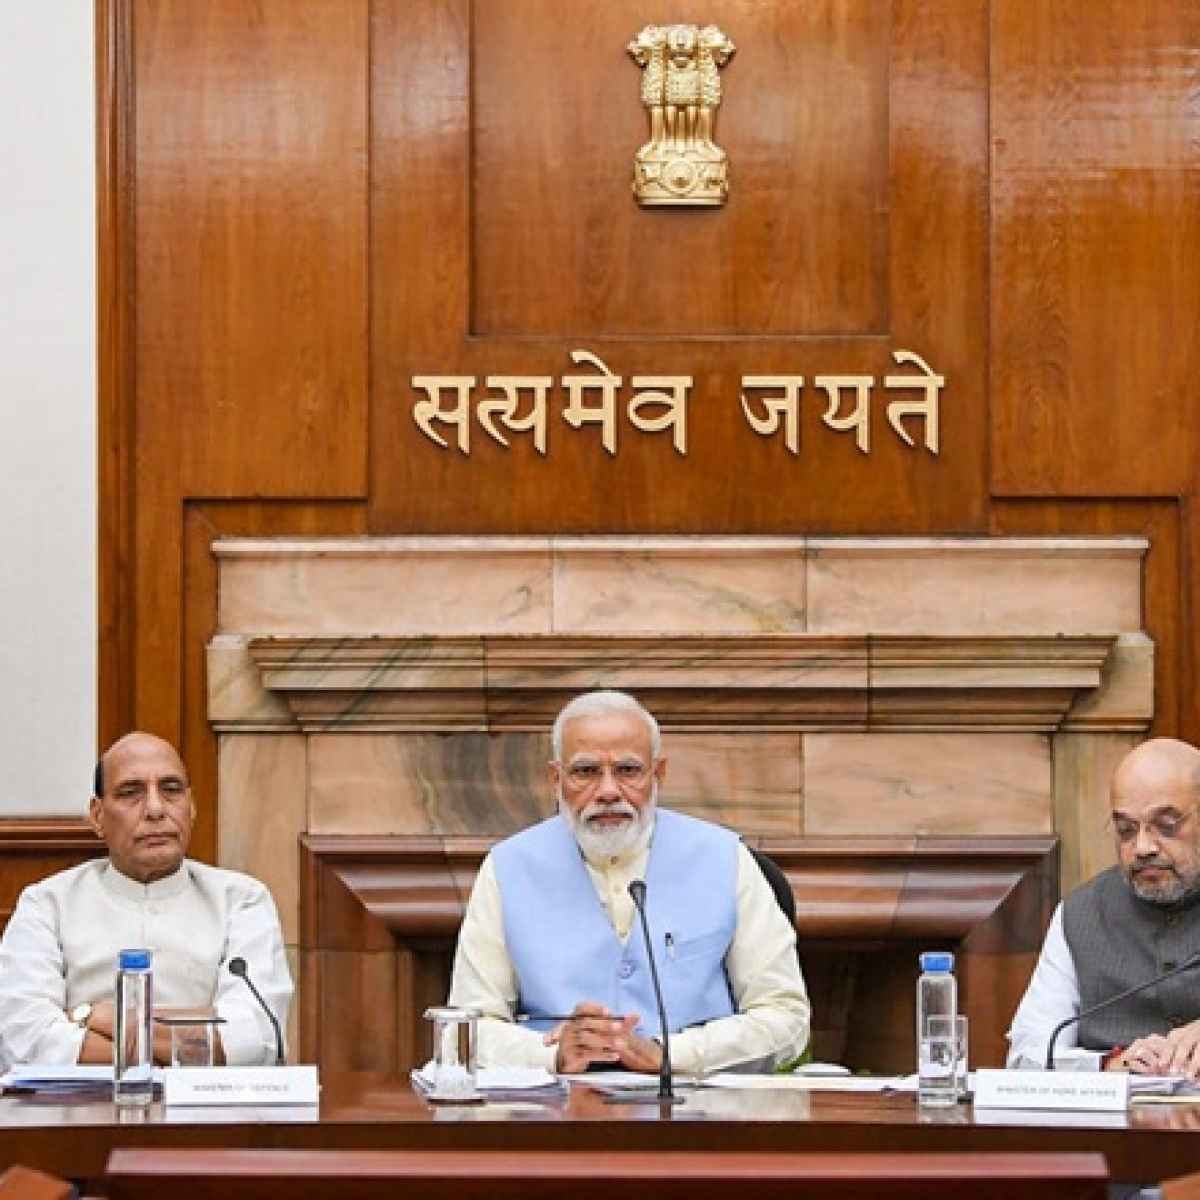 Cabinet approves Rs 3,941.35 cr for NPR to list 'unusual residents of country'